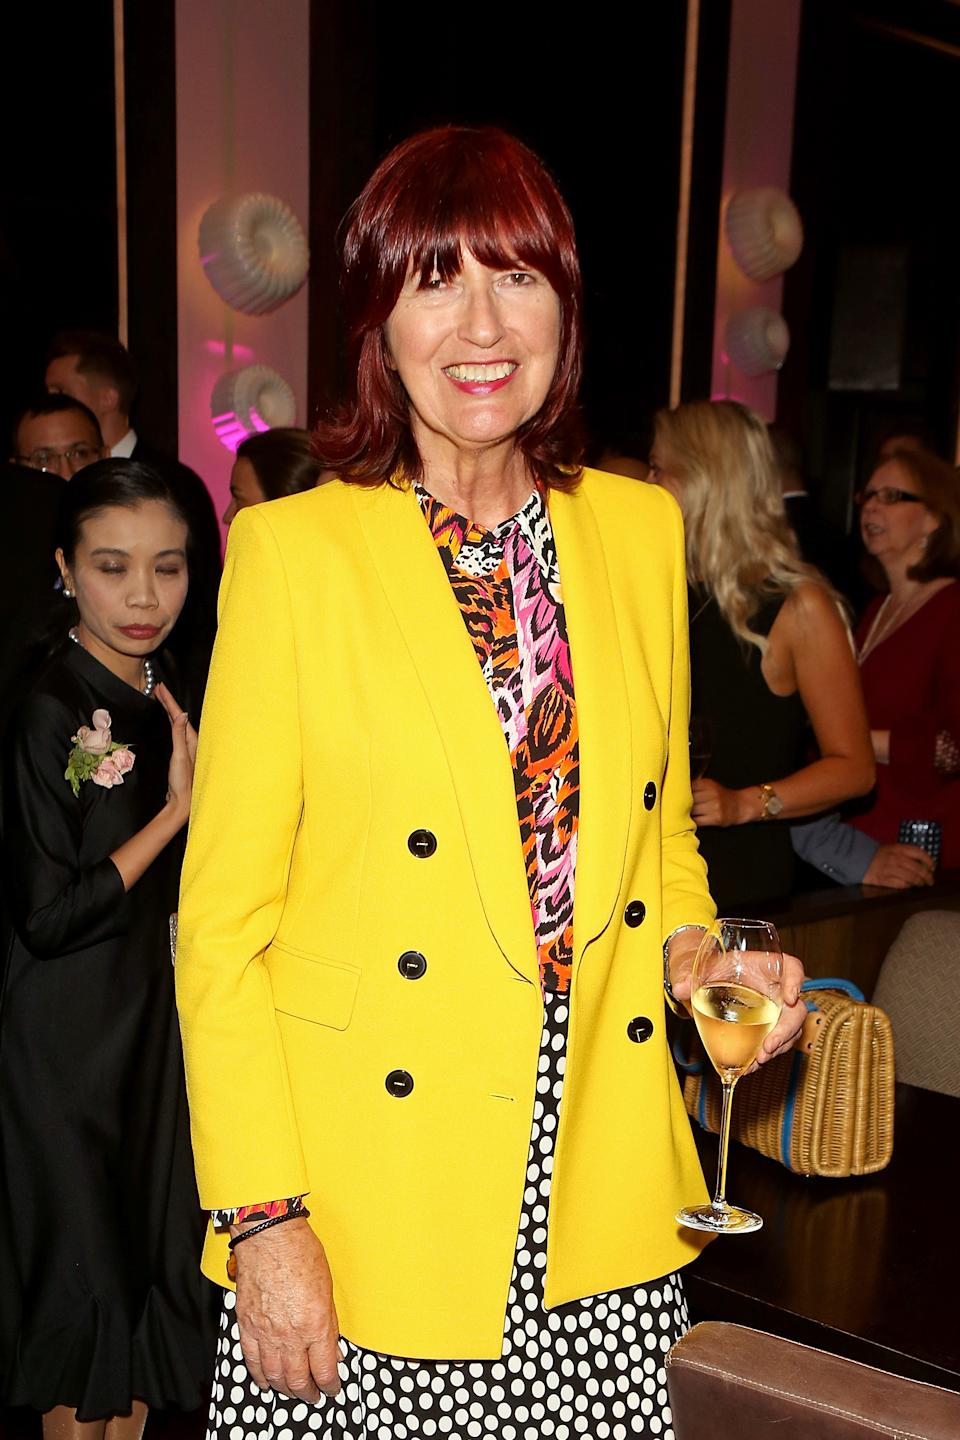 Janet Street Porter attends the Reinvented and Reimagined Mandarin Oriental Hyde Park, London relaunch party on June 11, 2019 in London, England. (Photo by David M. Benett/Dave Benett/Getty Images for Mandarin Oriental Hyde Park)